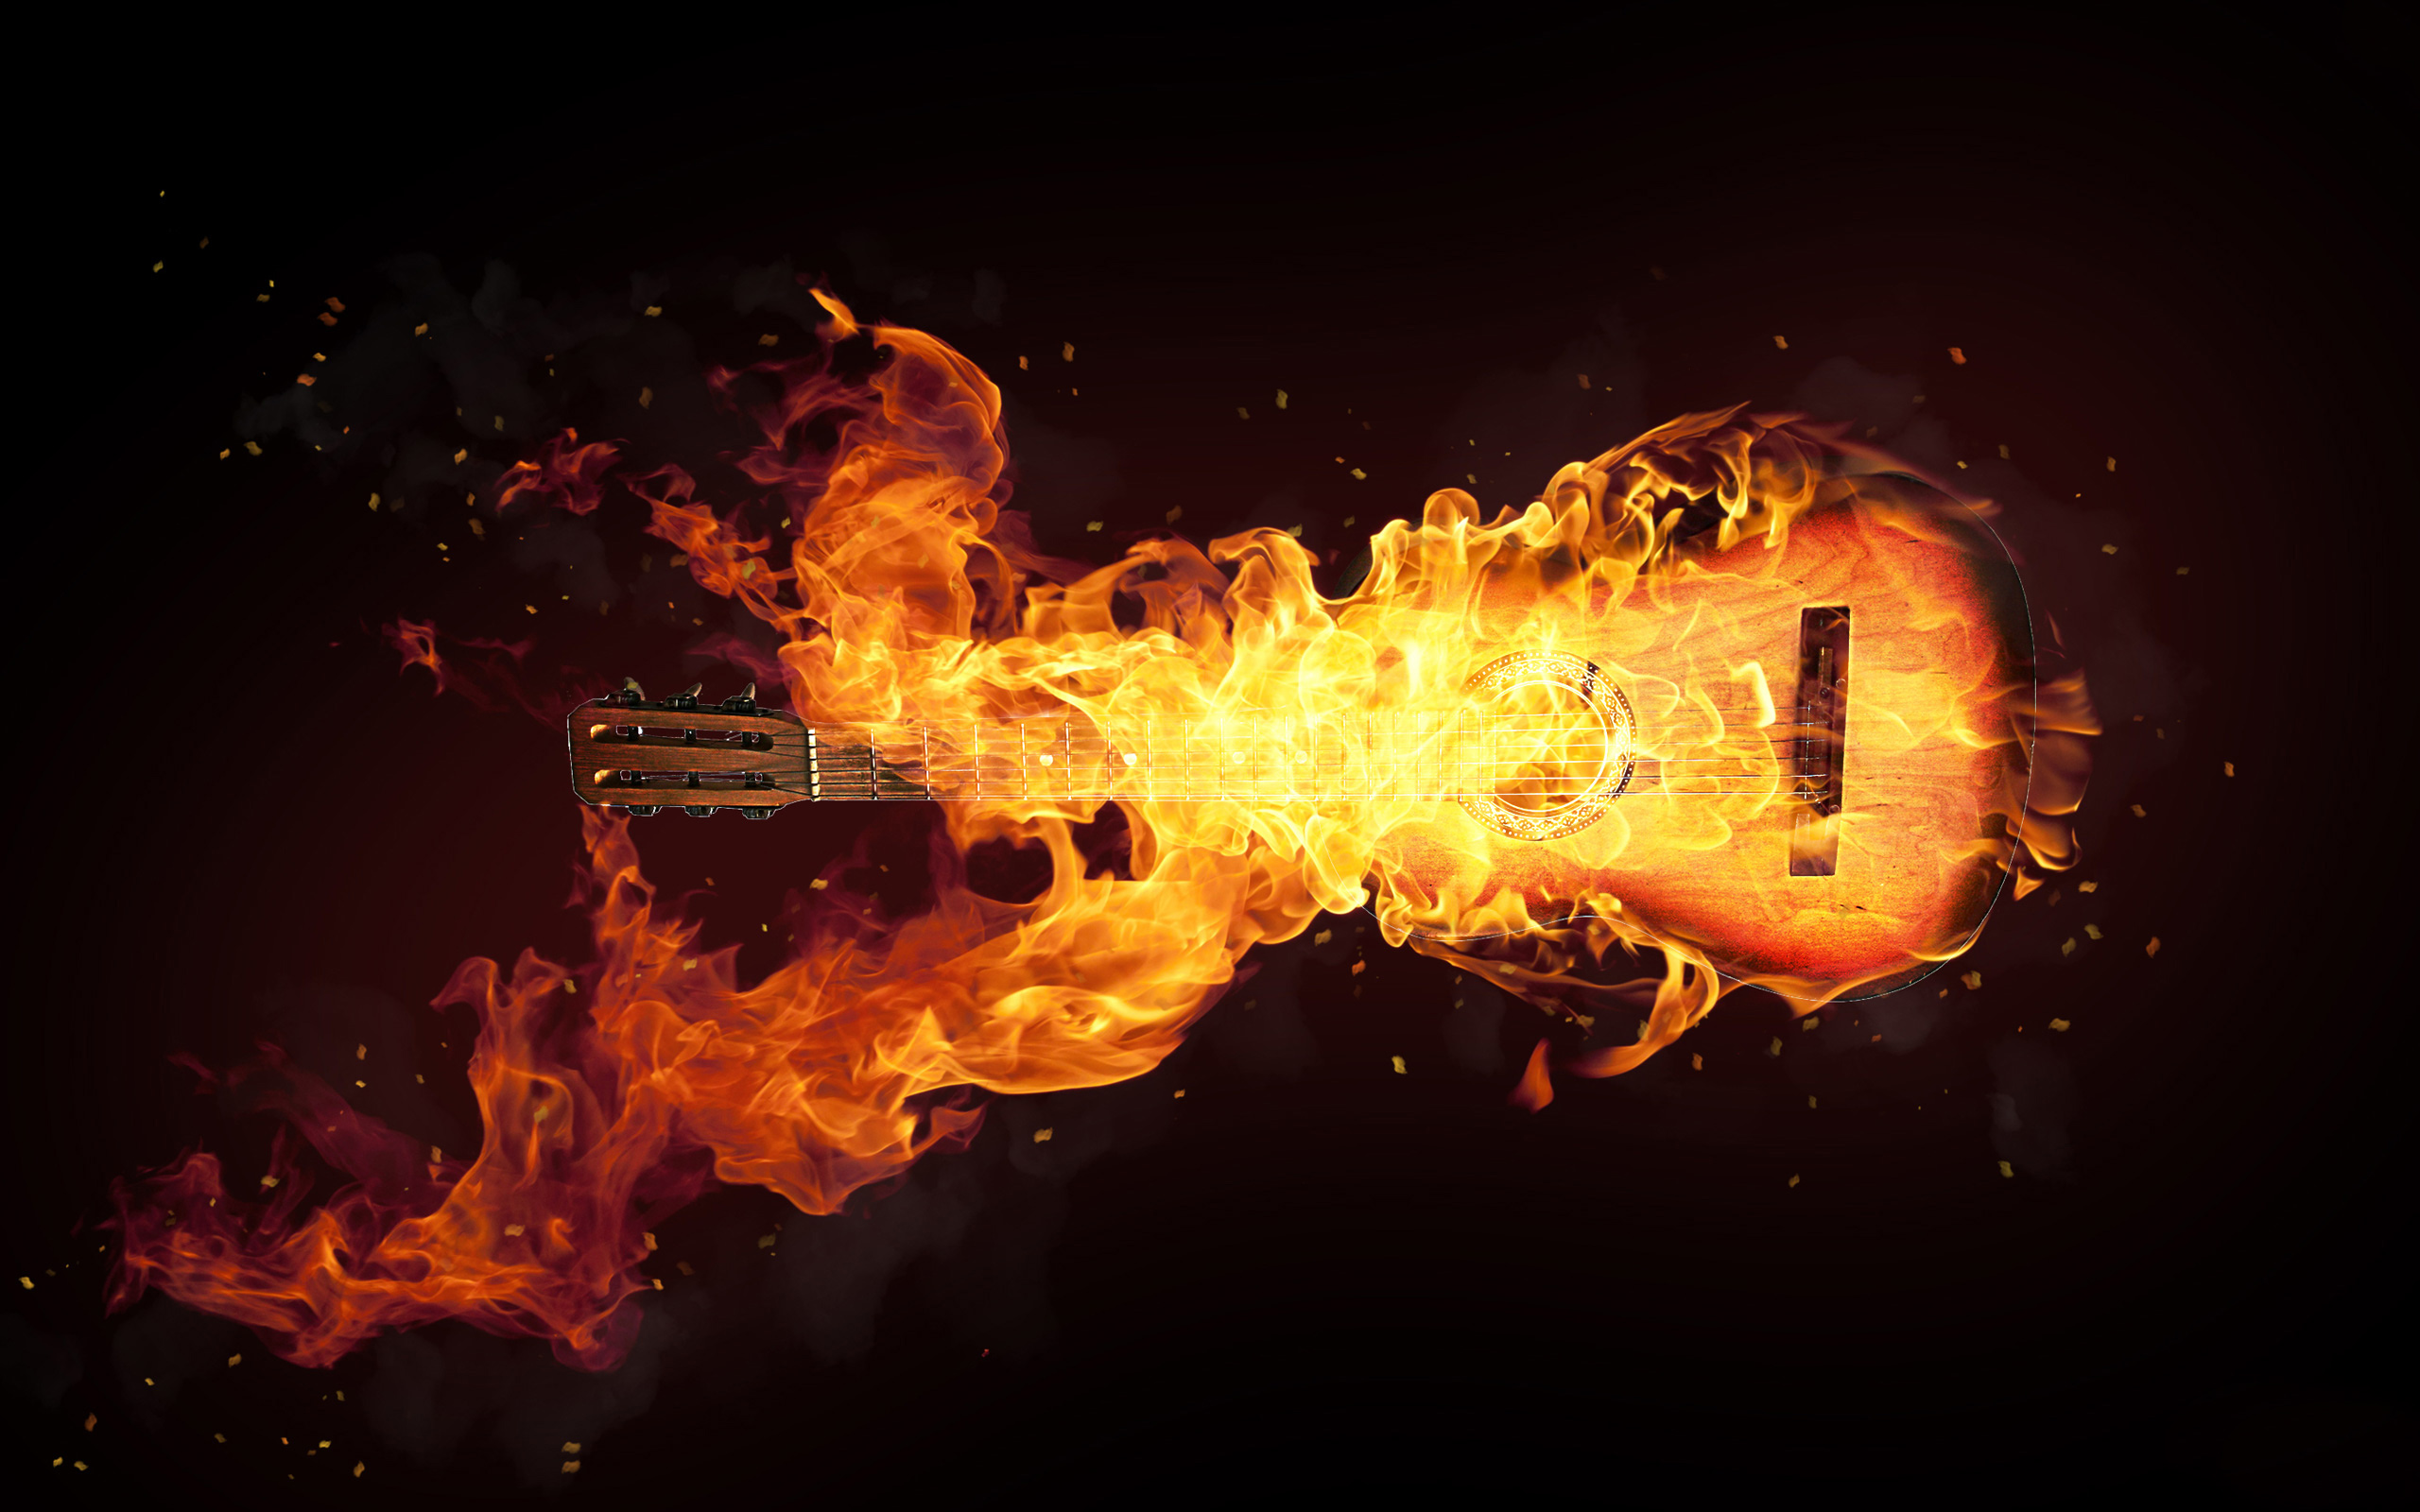 Fire Effect Wallpaper